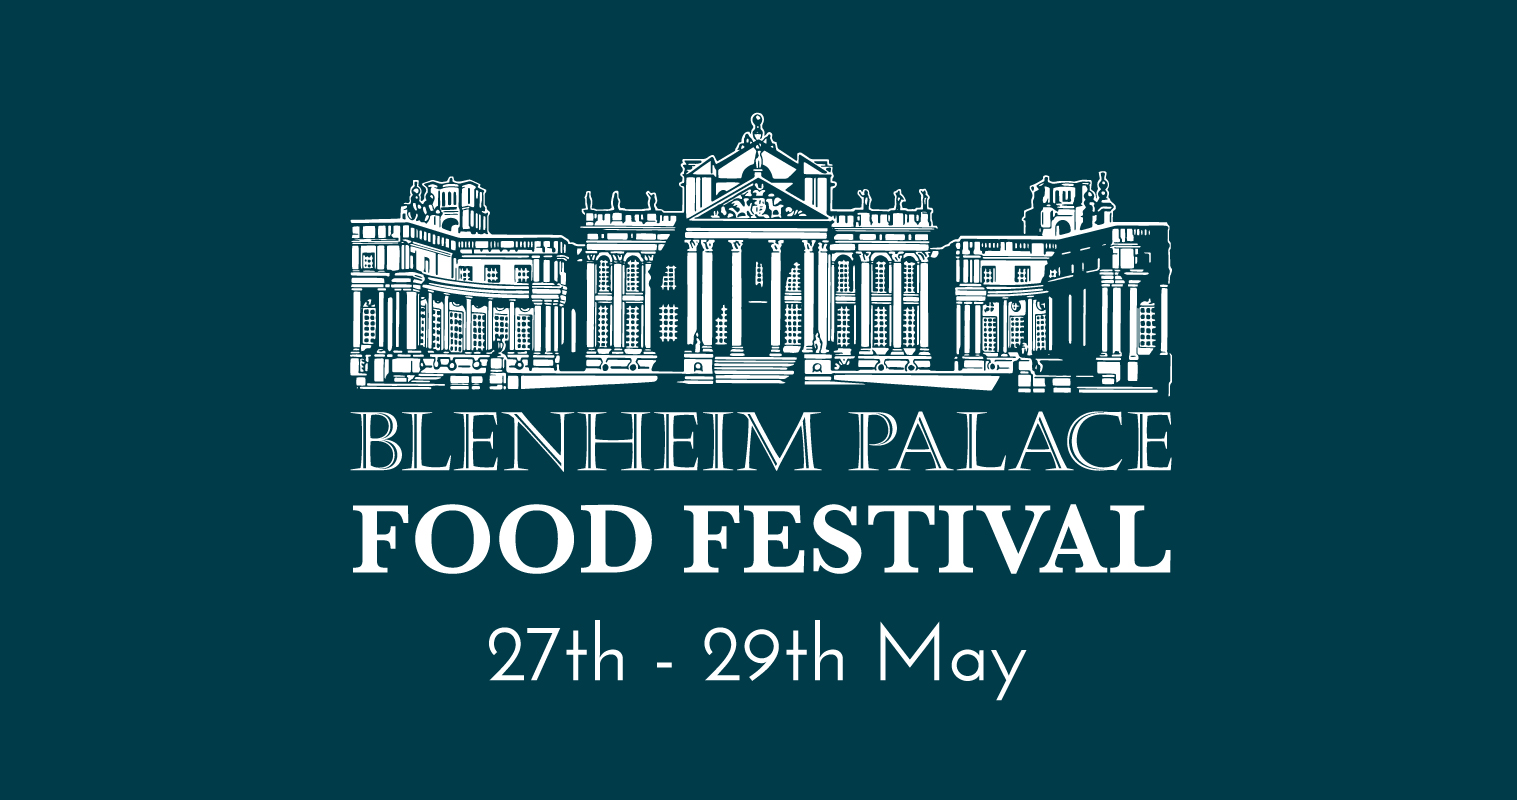 Blenheim Palace Food Festival